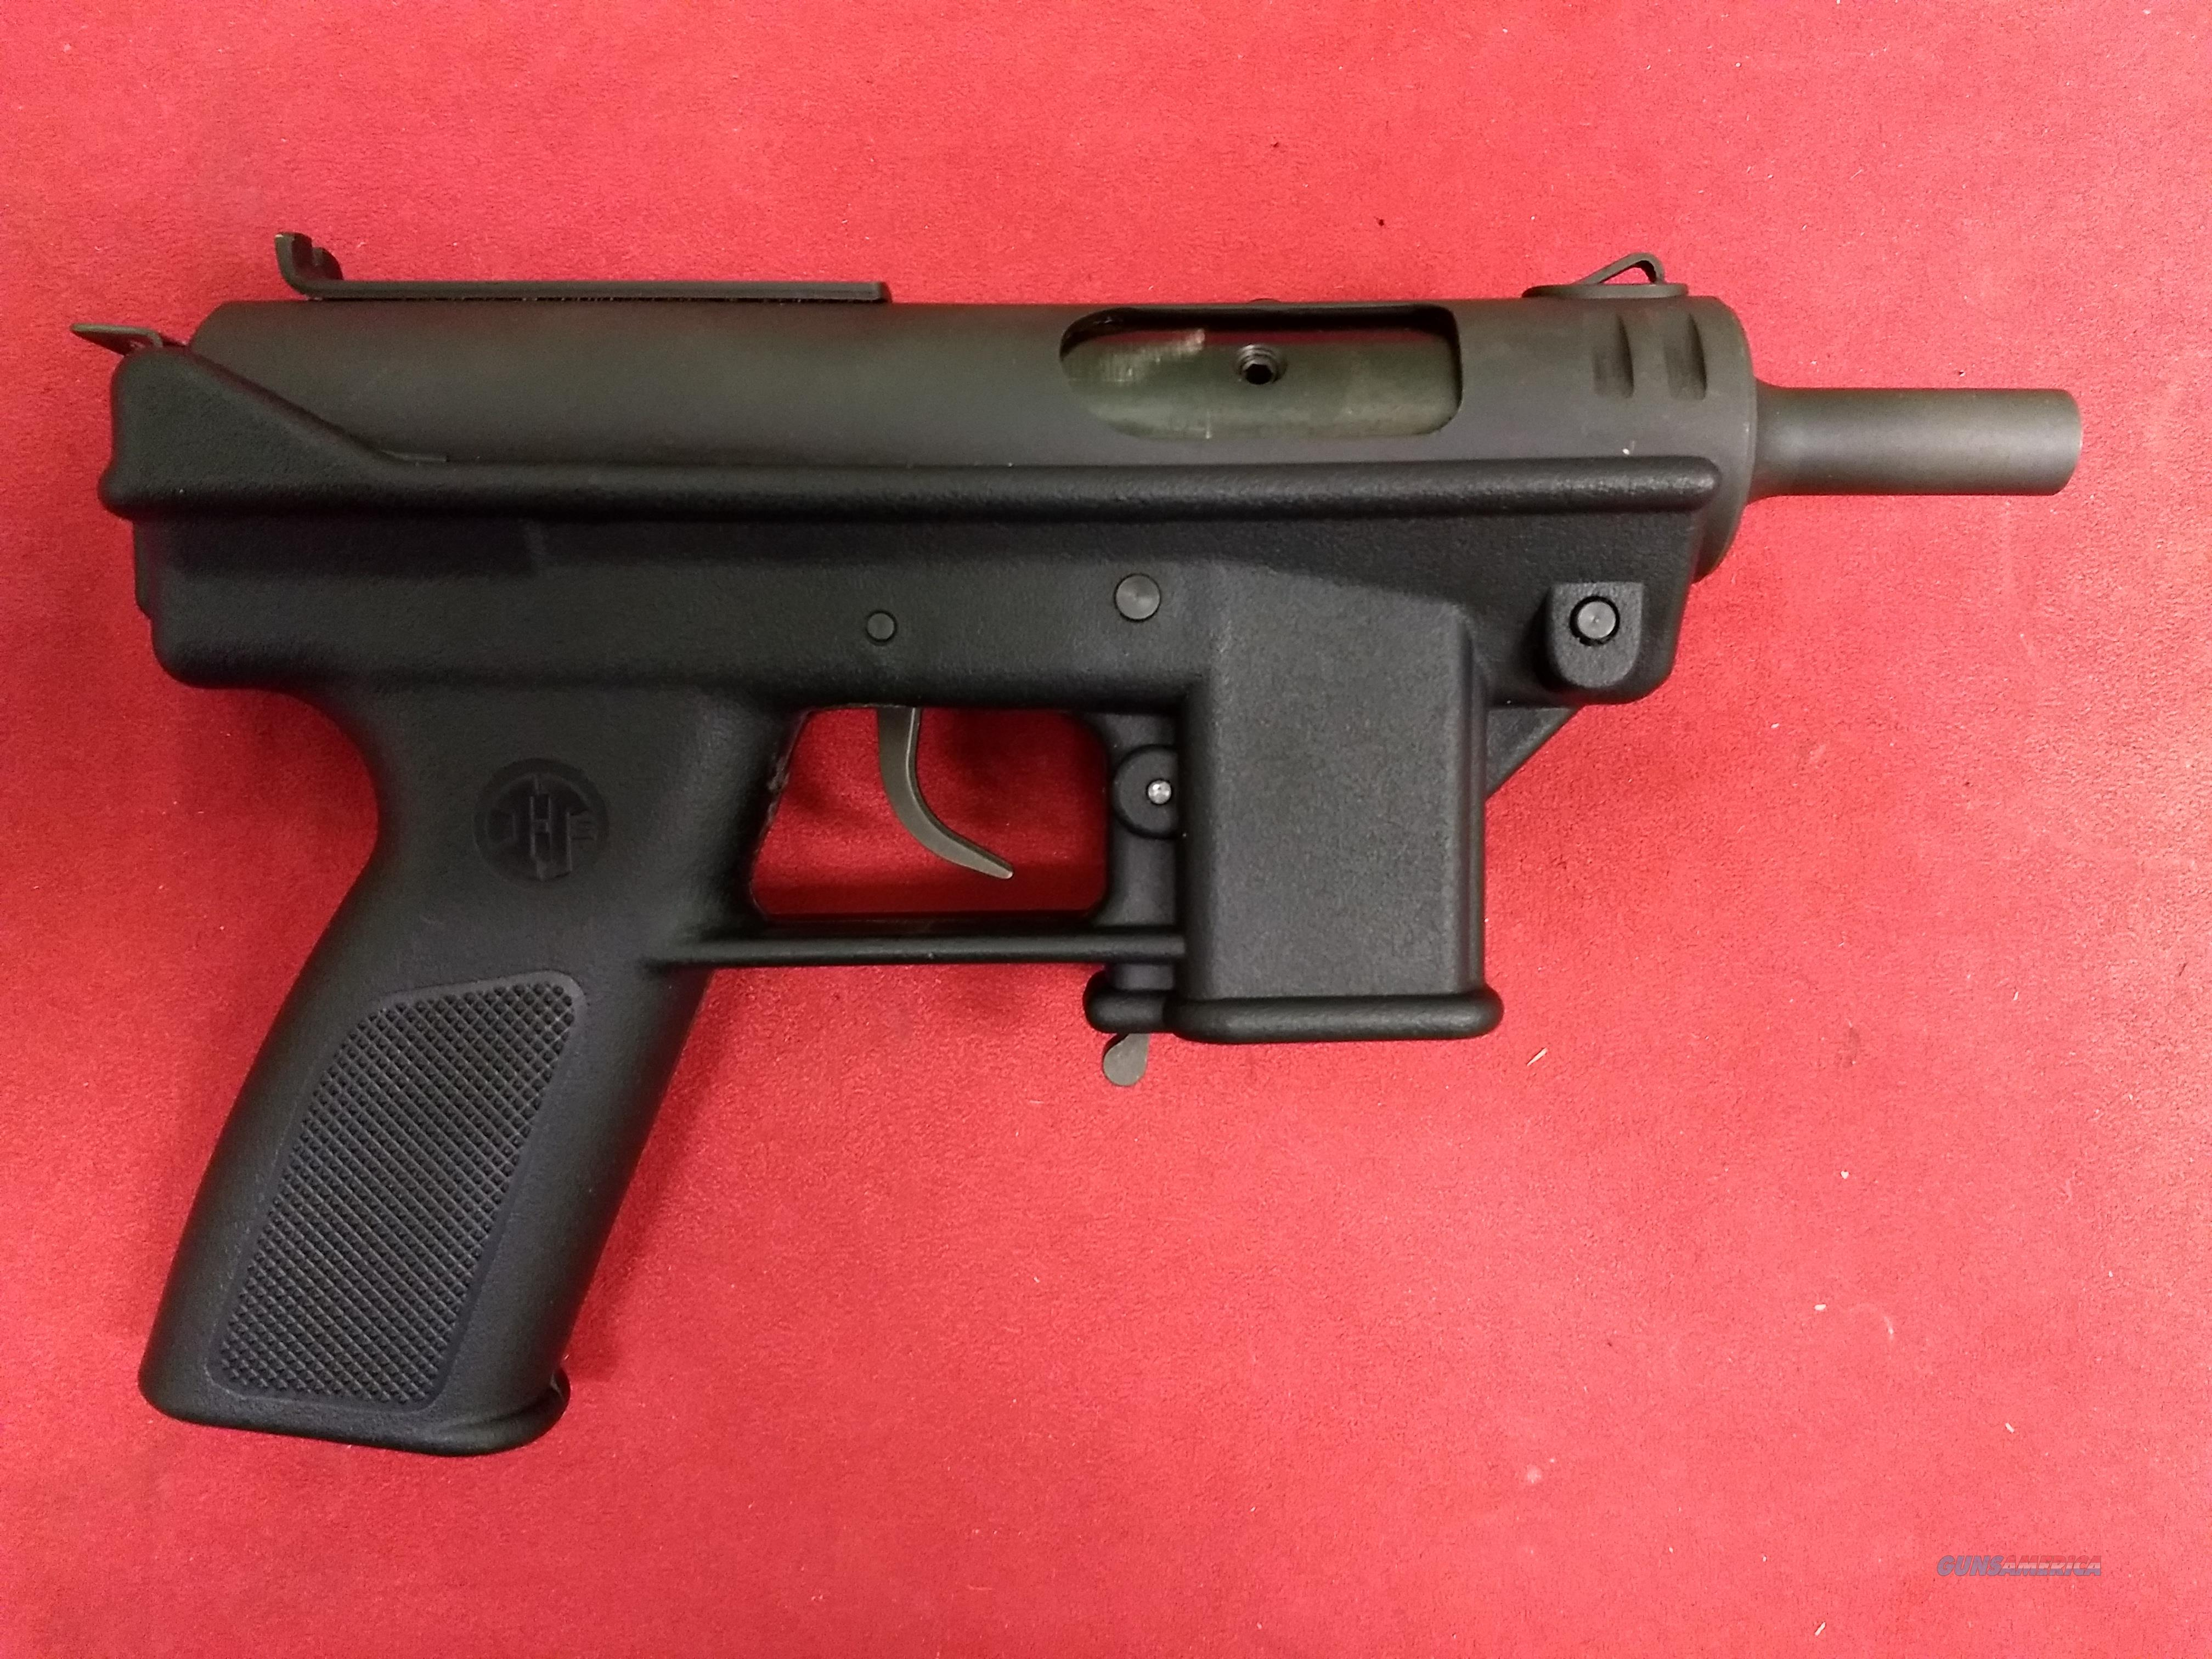 Intratec AB-10 Pistol, 9mm, TONS of Mags, Like New!  Guns > Pistols > Intratec Pistols